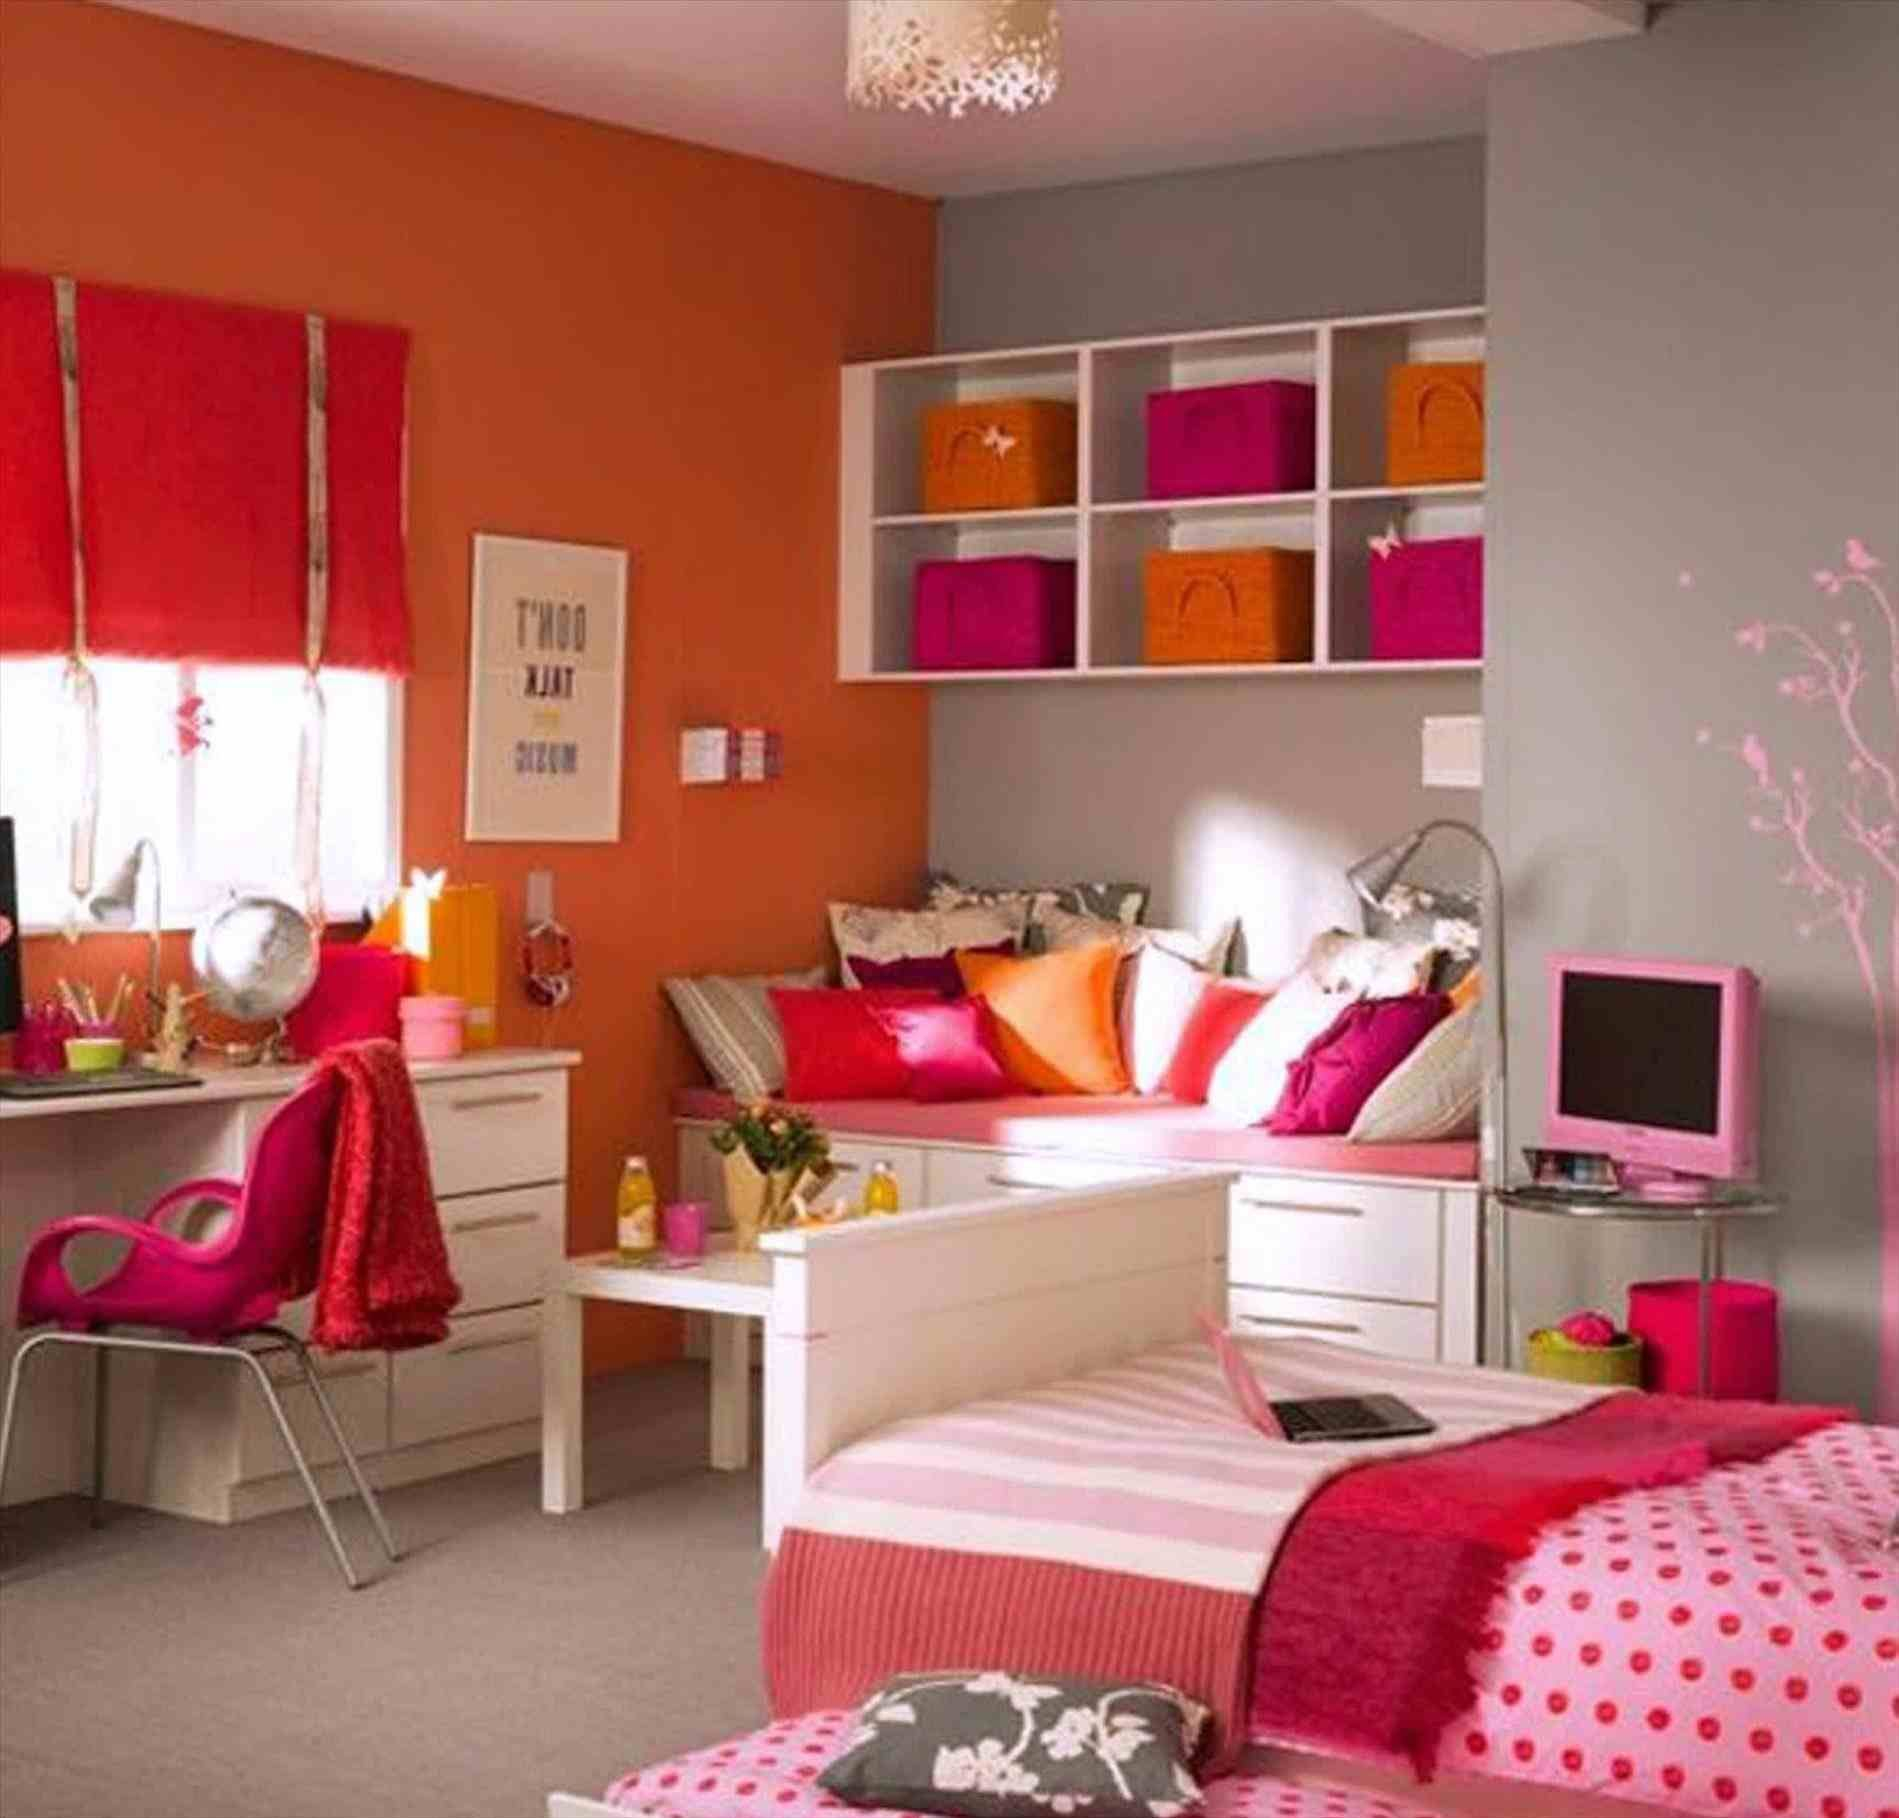 51 Cute Girls Bedroom Ideas For Small Rooms Matchness Com